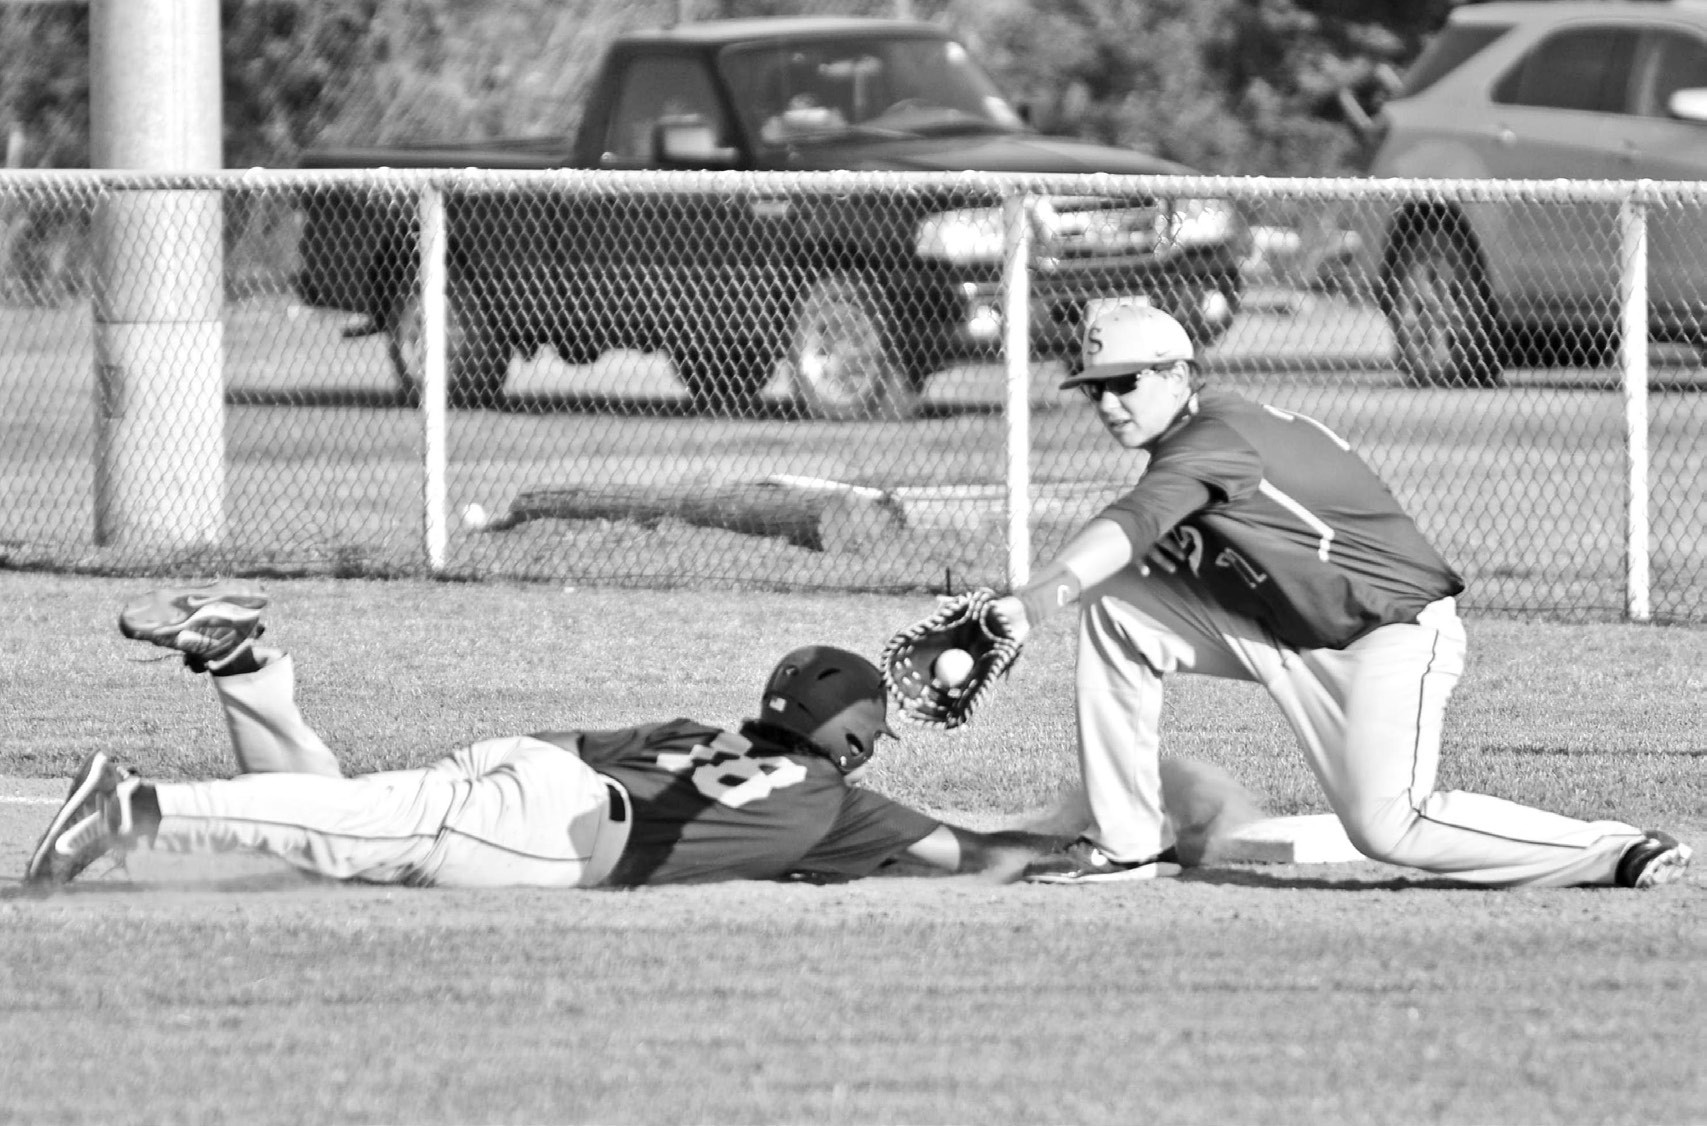 Charlotte junior James Deleon slides safely back to 1st after attempting to steal a base last week against Sabinal. The Trojans won 8-0 and improve to 20-3 overall.